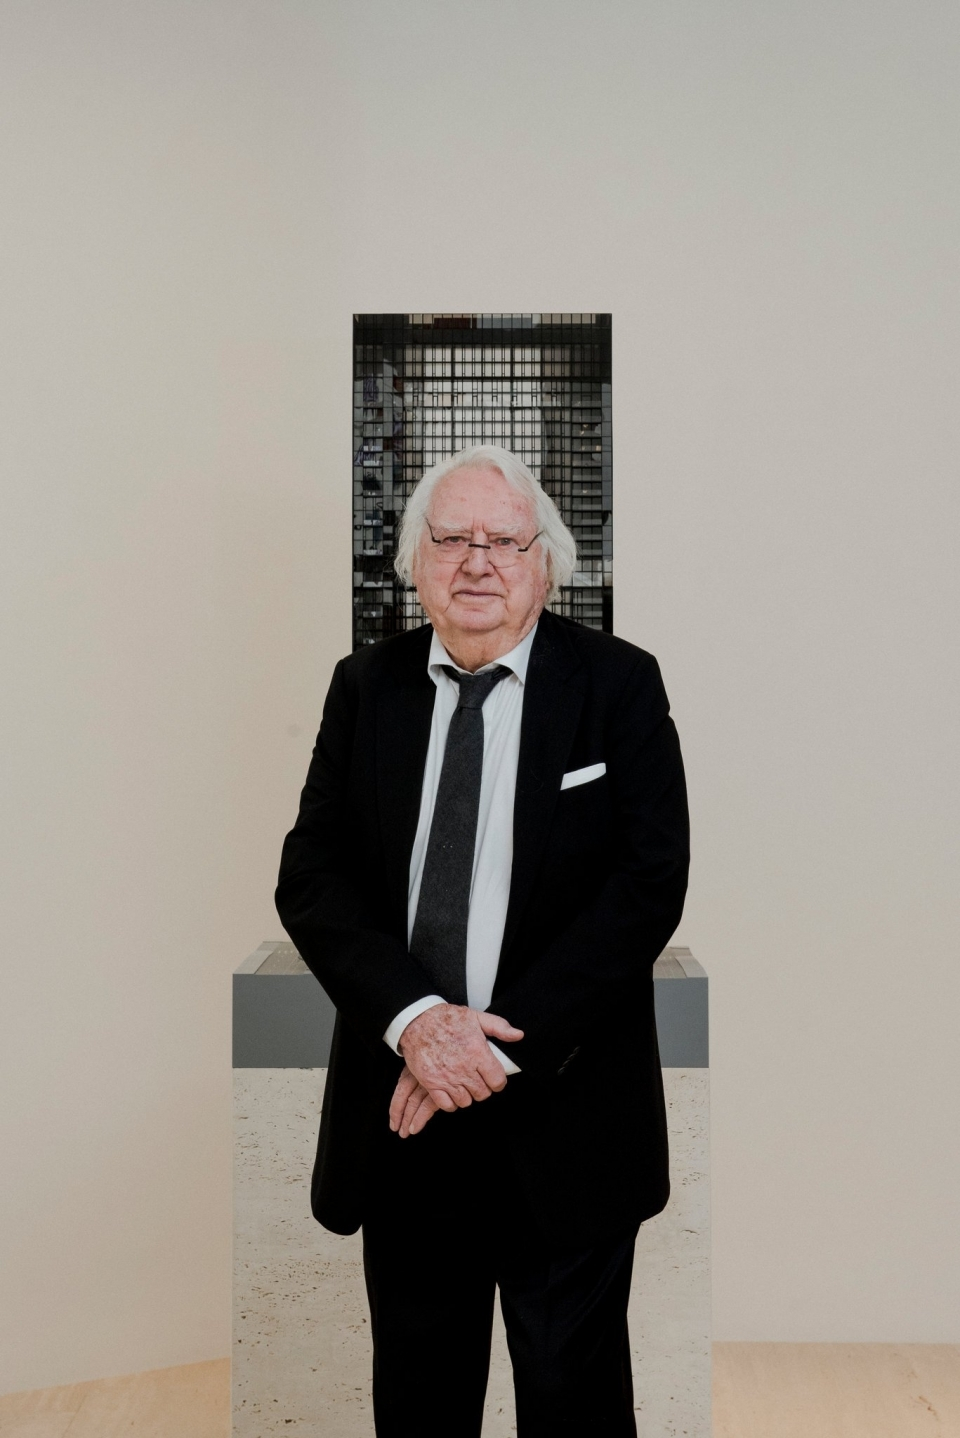 The architect Richard Meier posing earlier this month with a model for a residential tower in Manhattan